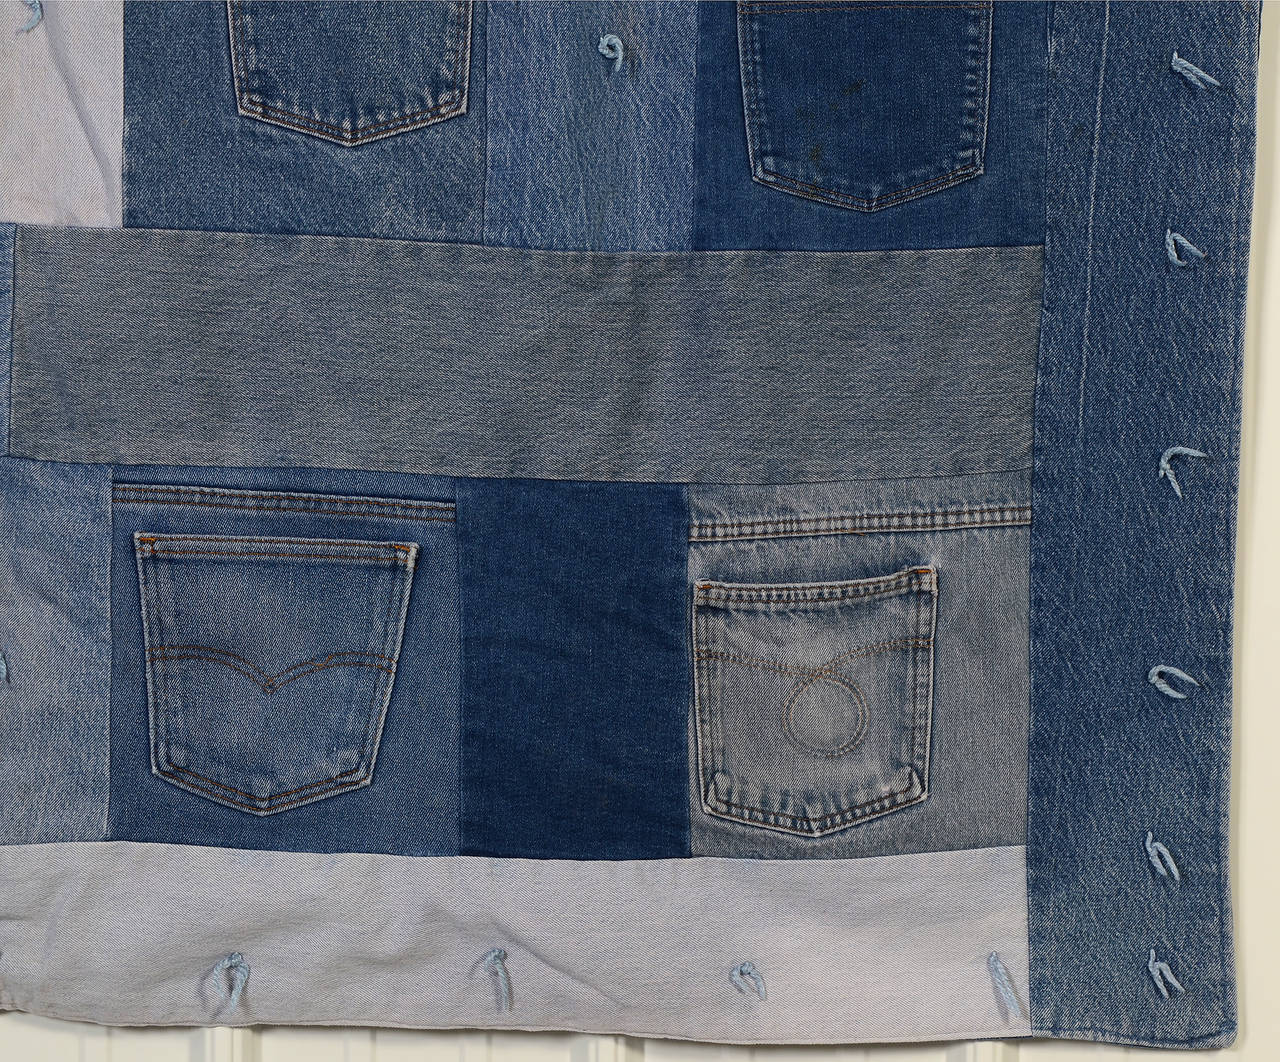 American Denim Quilt with Jeans Pockets For Sale